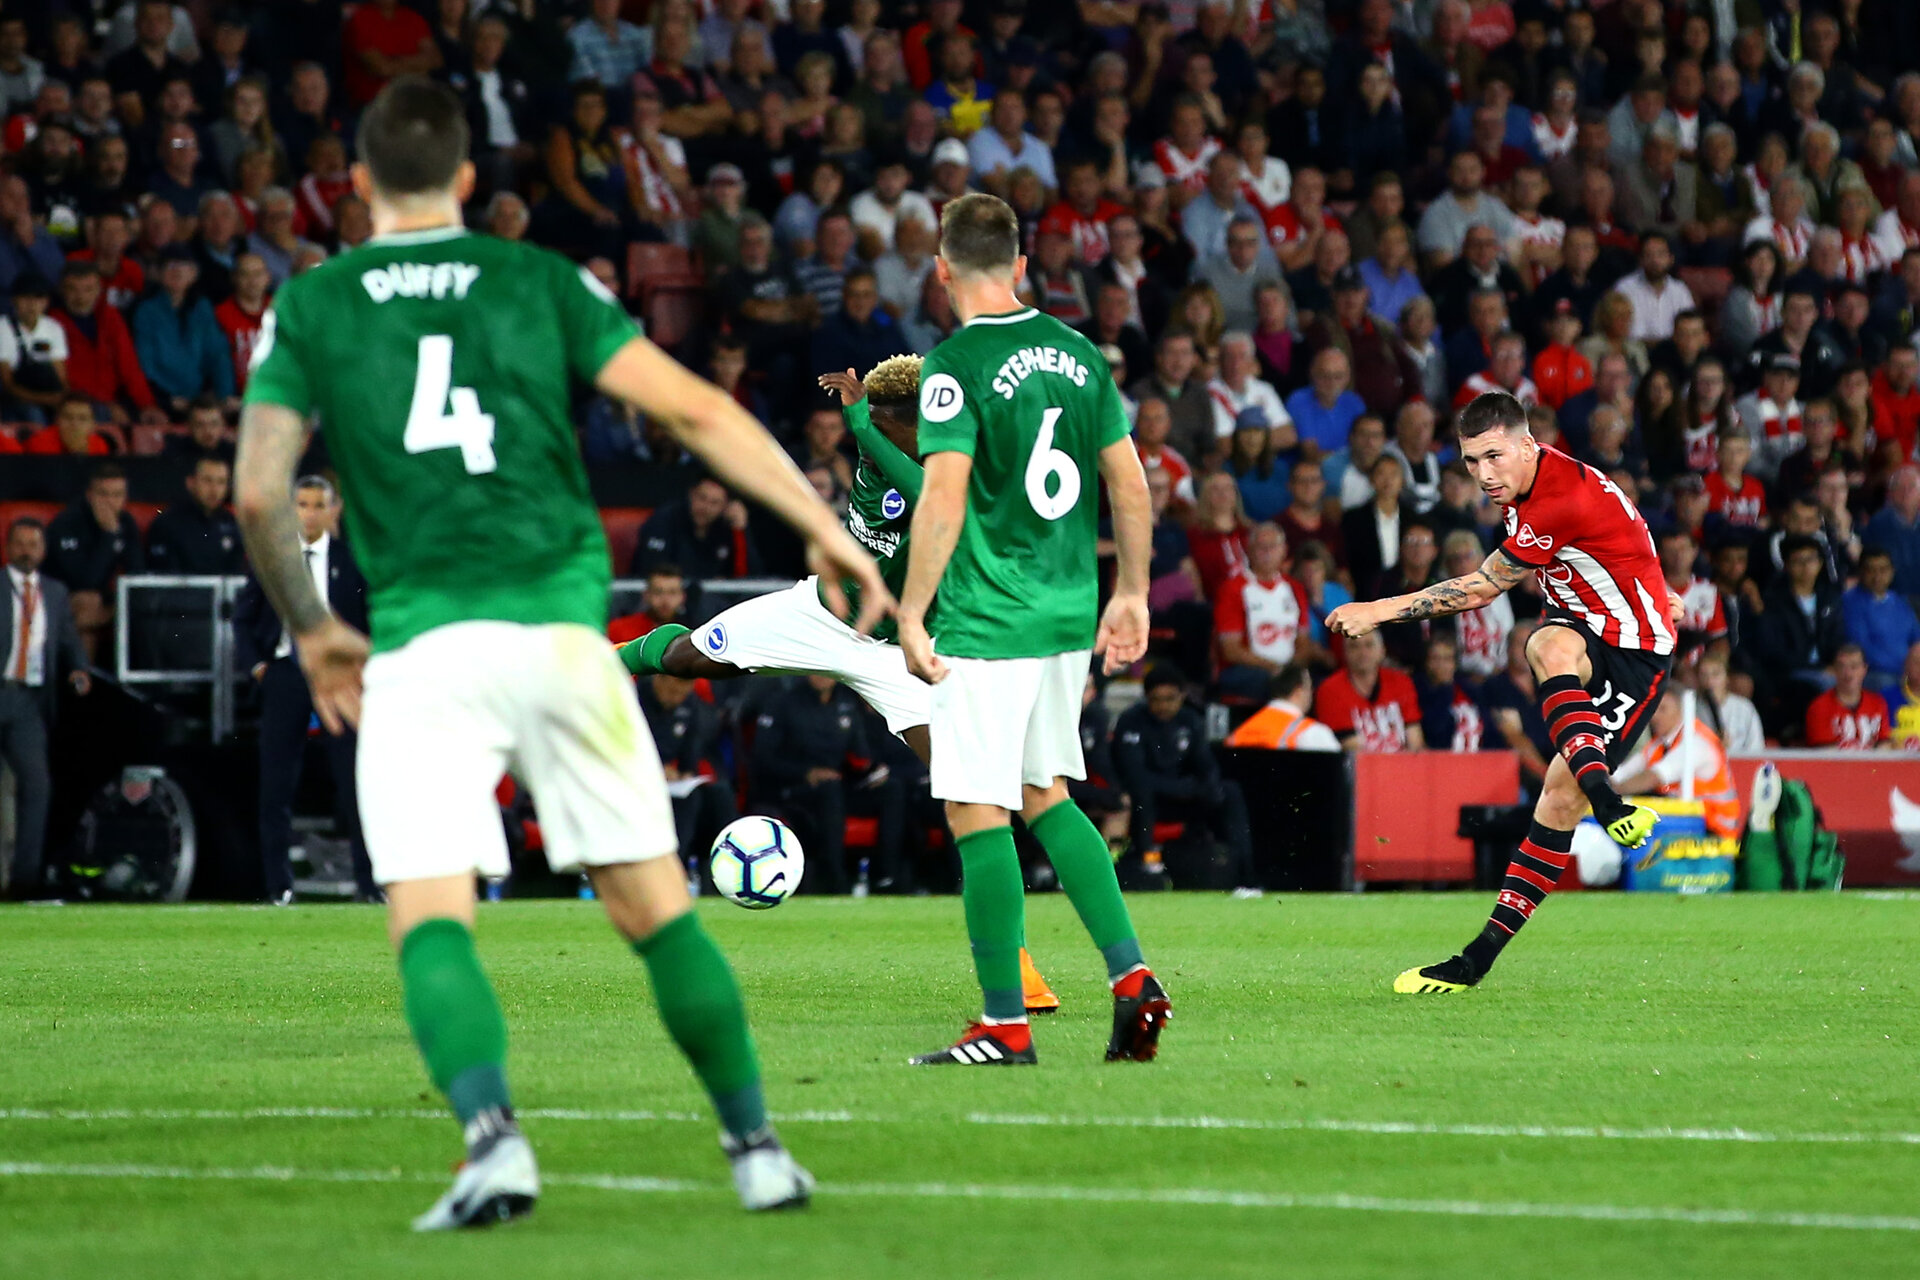 SOUTHAMPTON, ENGLAND - SEPTEMBER 17: Pierre-Emile H¿jbjerg (right) of Southampton FC  scores during the Premier League match between Southampton FC and Brighton & Hove Albion at St Mary's Stadium on September 17, 2018 in Southampton, United Kingdom. (Photo by James Bridle - Southampton FC/Southampton FC via Getty Images) SOUTHAMPTON, ENGLAND - SEPTEMBER 17: Pierre-Emile Højbjerg (right) of Southampton FC  scores during the Premier League match between Southampton FC and Brighton & Hove Albion at St Mary's Stadium on September 17, 2018 in Southampton, United Kingdom. (Photo by James Bridle - Southampton FC/Southampton FC via Getty Images)